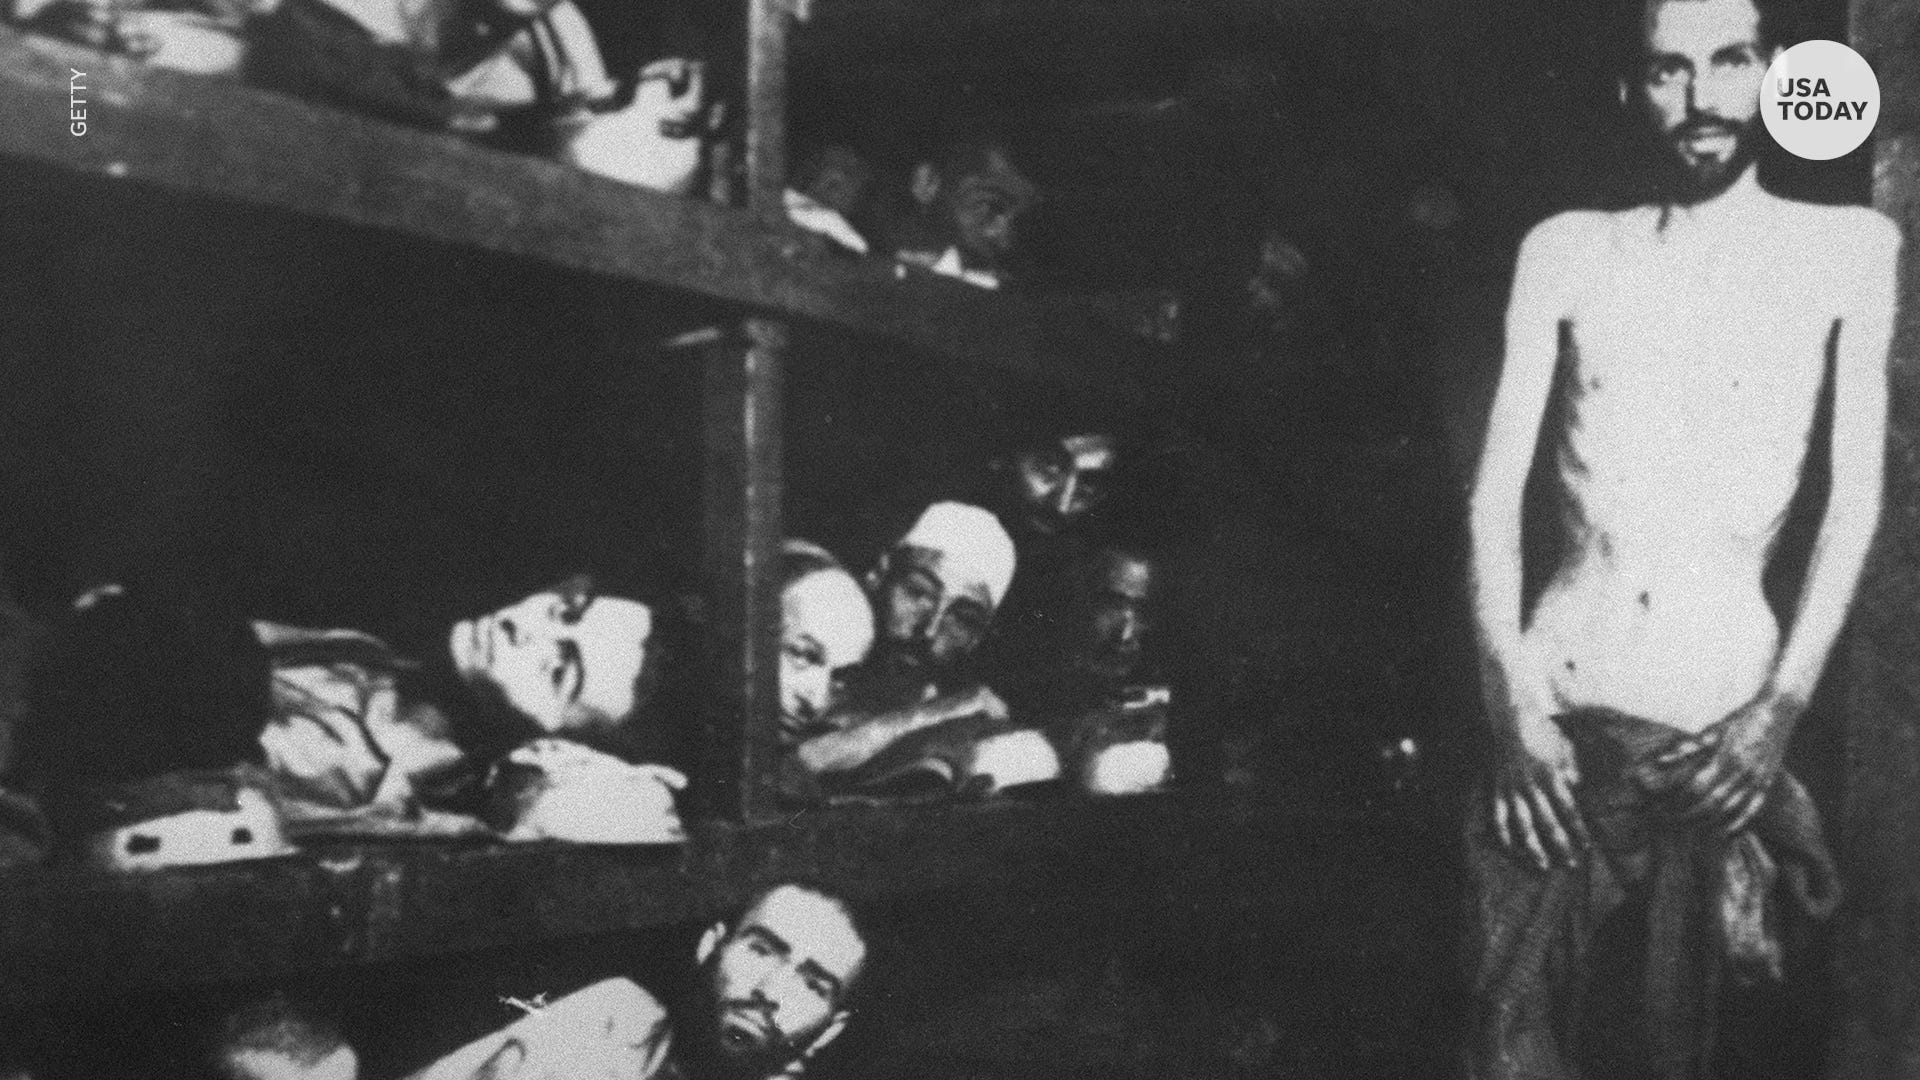 Remembering the millions of Jewish lives that were lost during the Holocaust